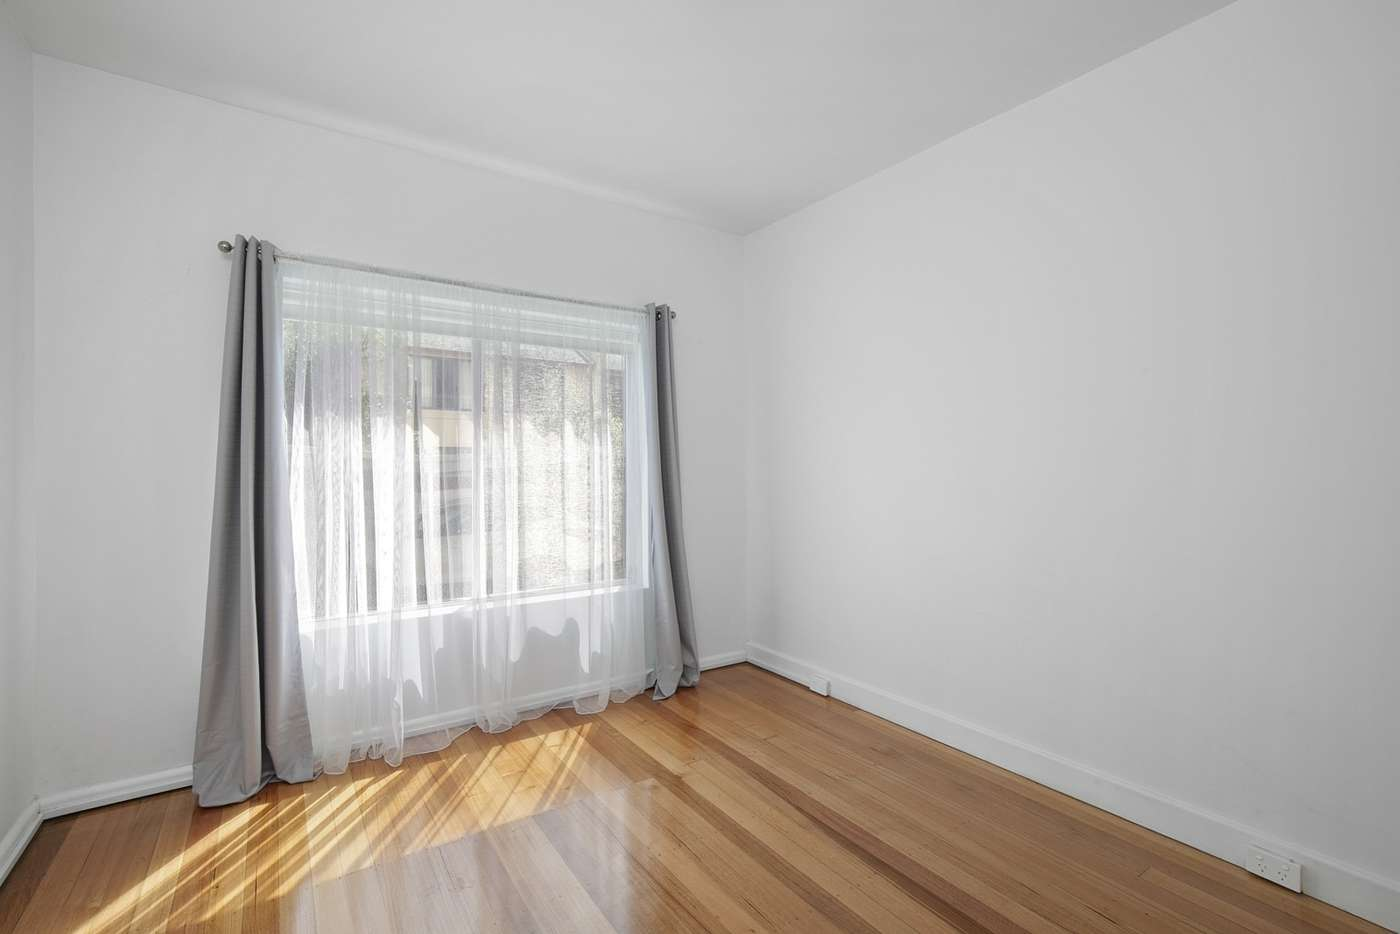 Sixth view of Homely unit listing, 3/2 Pevensey Street, Geelong VIC 3220